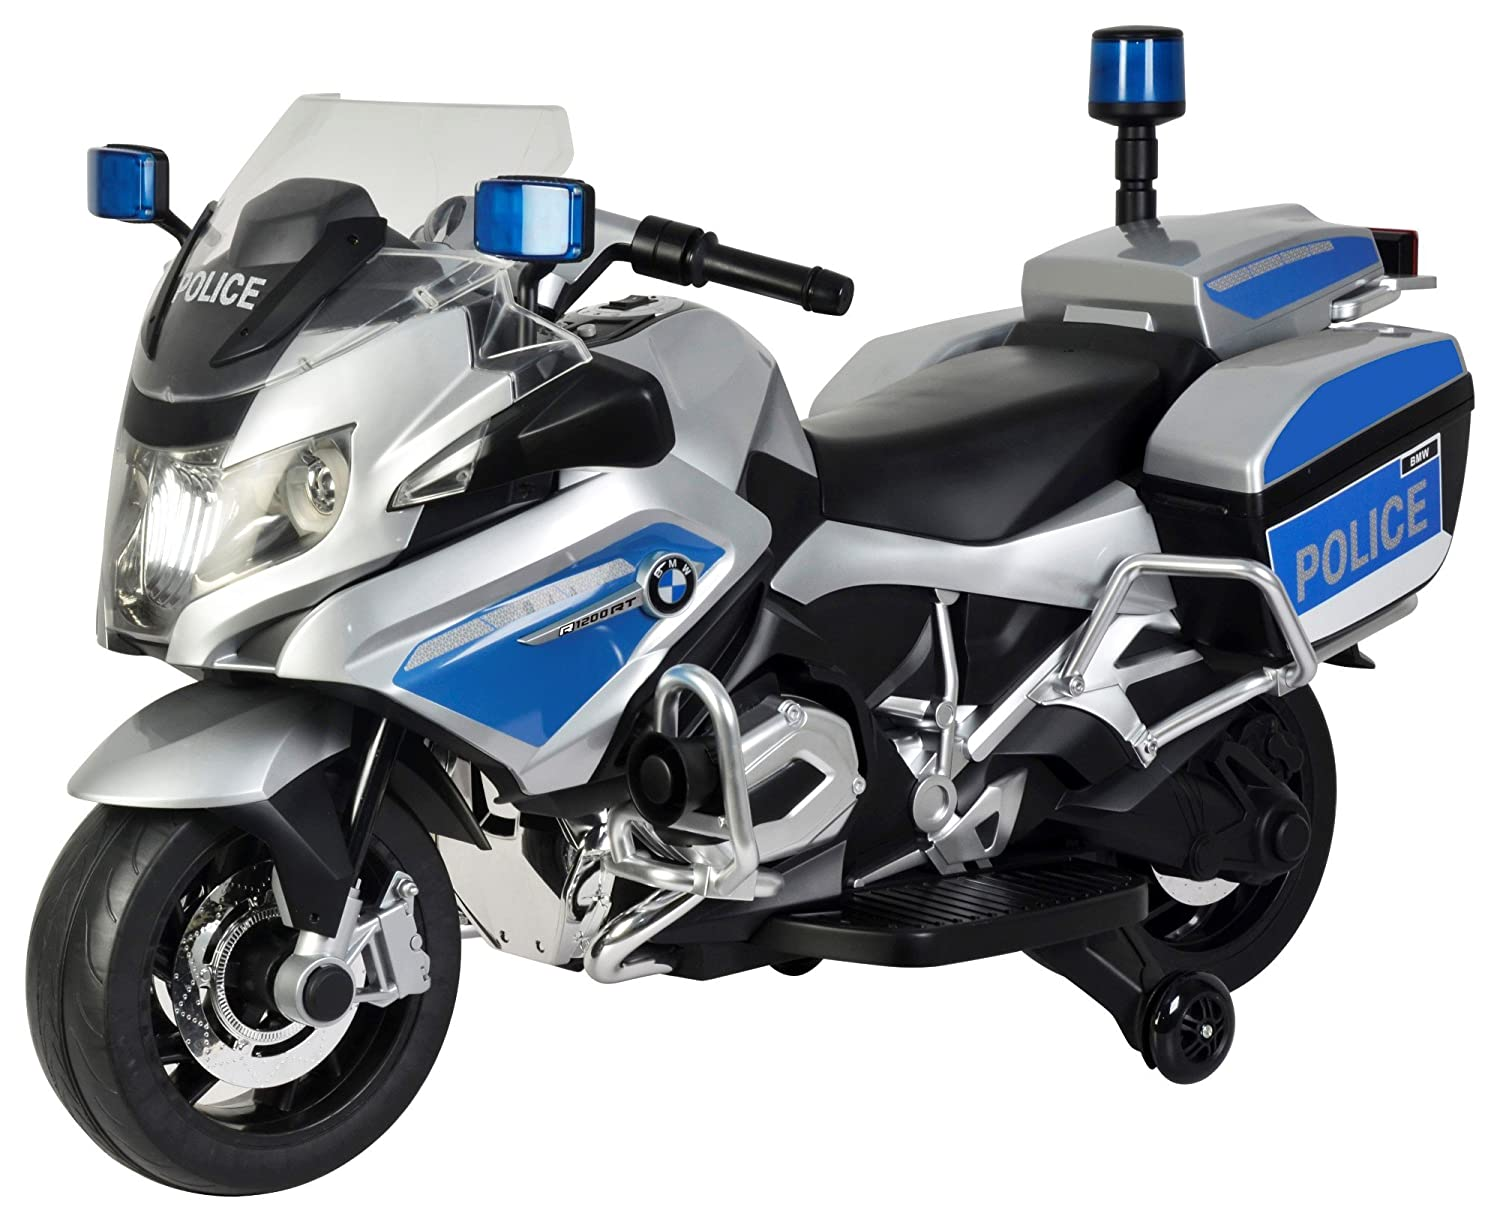 Toy House Officially Licensed Bmw R 1200 Rt Police Motorcycle Rechargeable Battery Operated Ride On Bike For Kids 2 To 7 Silver